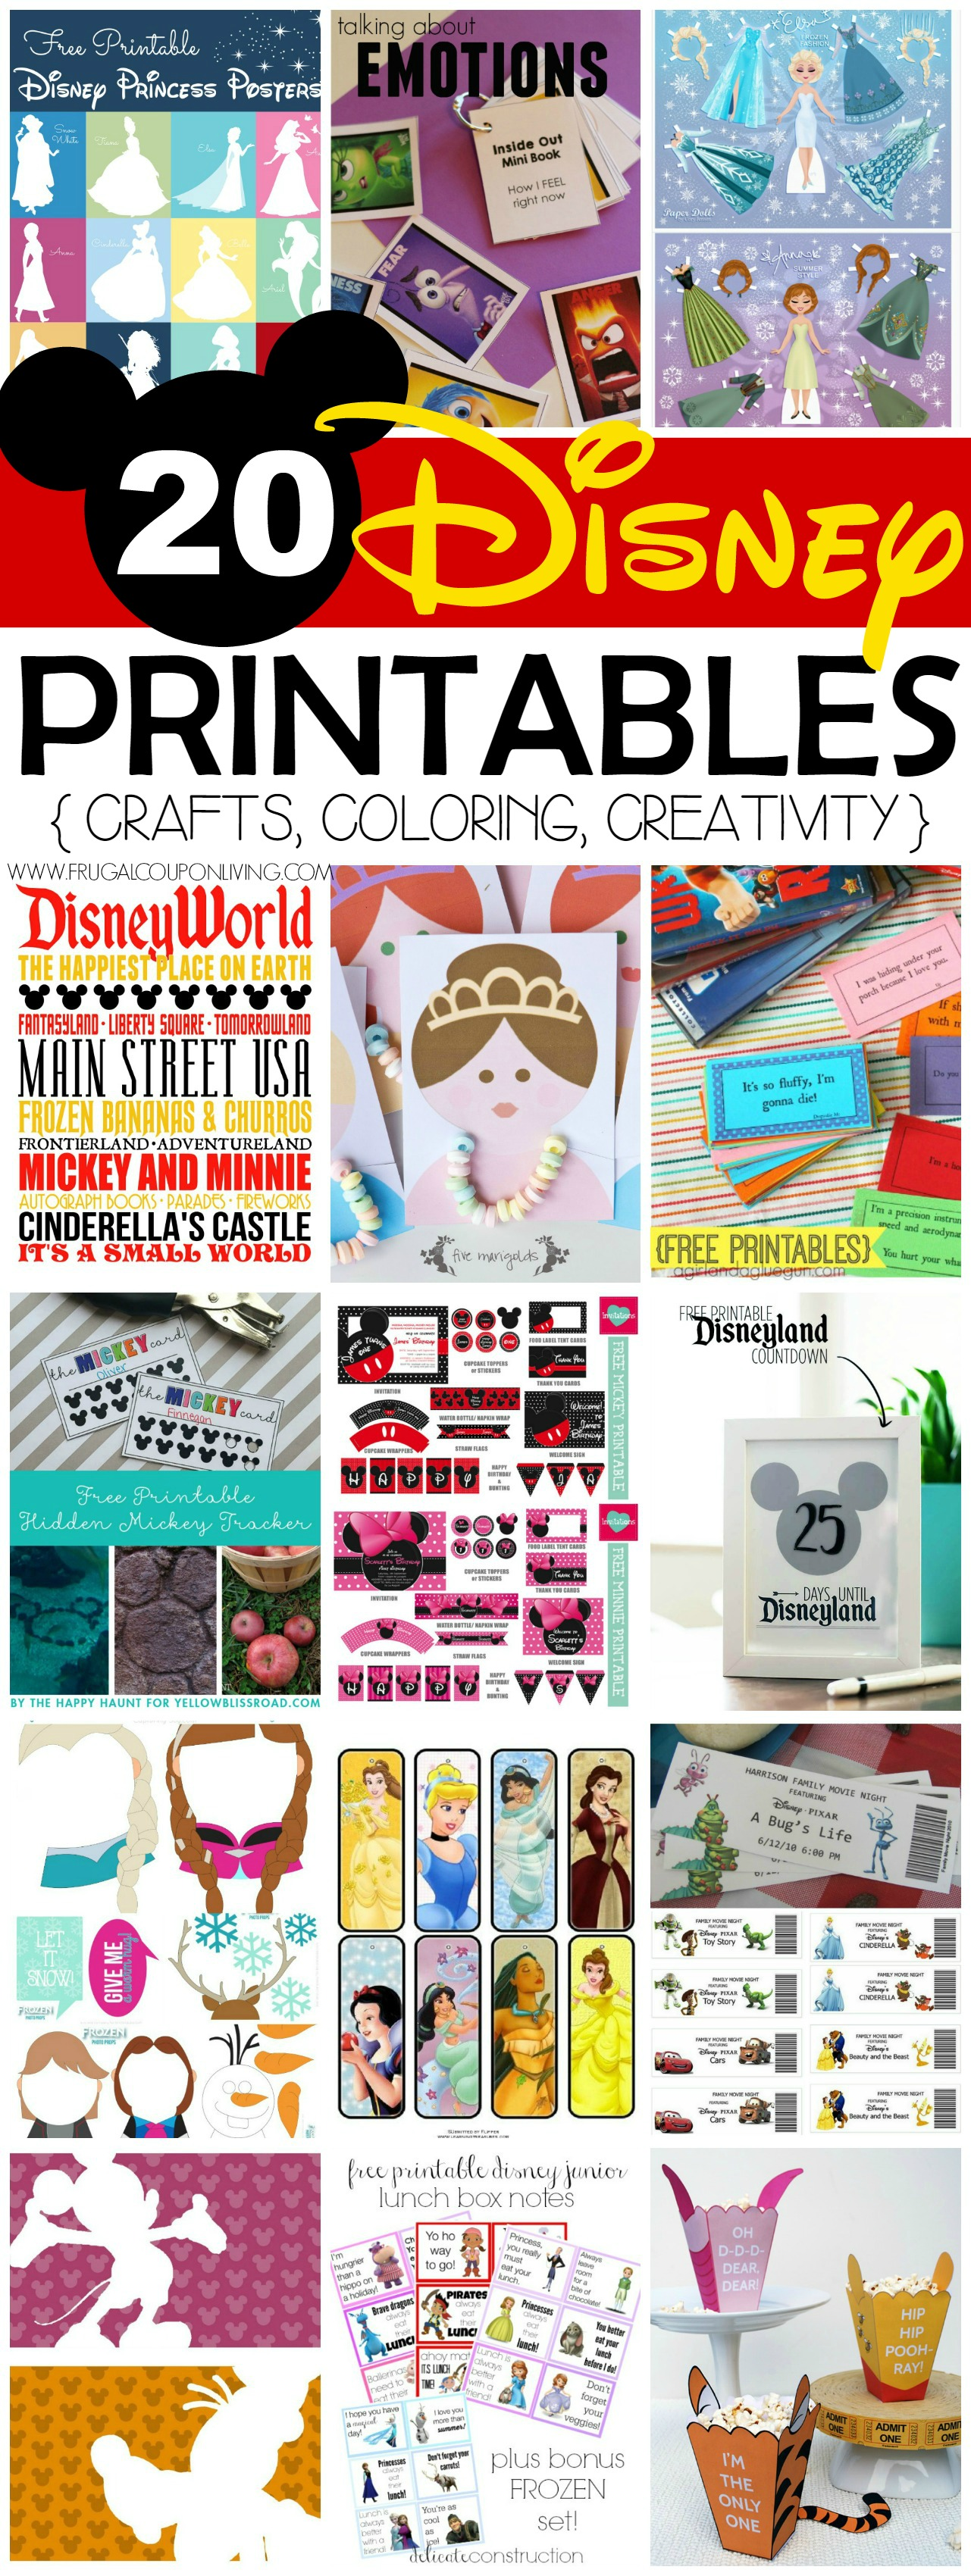 20 FREE Disney Printables - Crafts, Coloring, Creativity